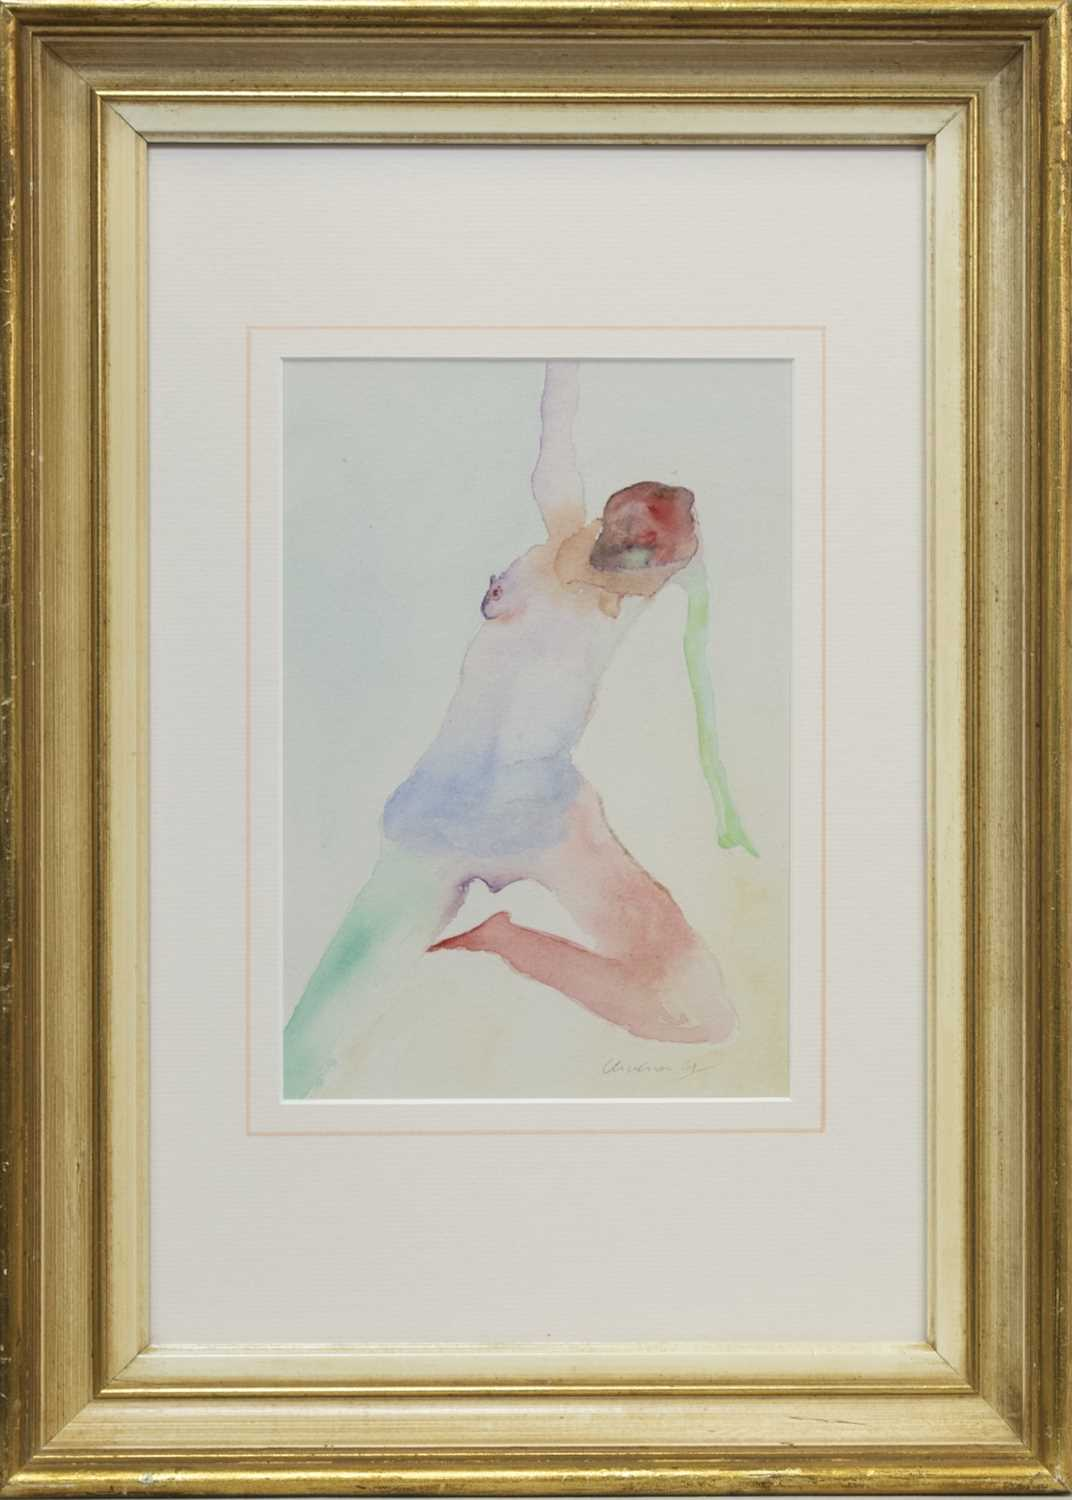 Lot 590 - UNTITLED 1961, A WATERCOLOUR BY NATHAN OLIVEIRA